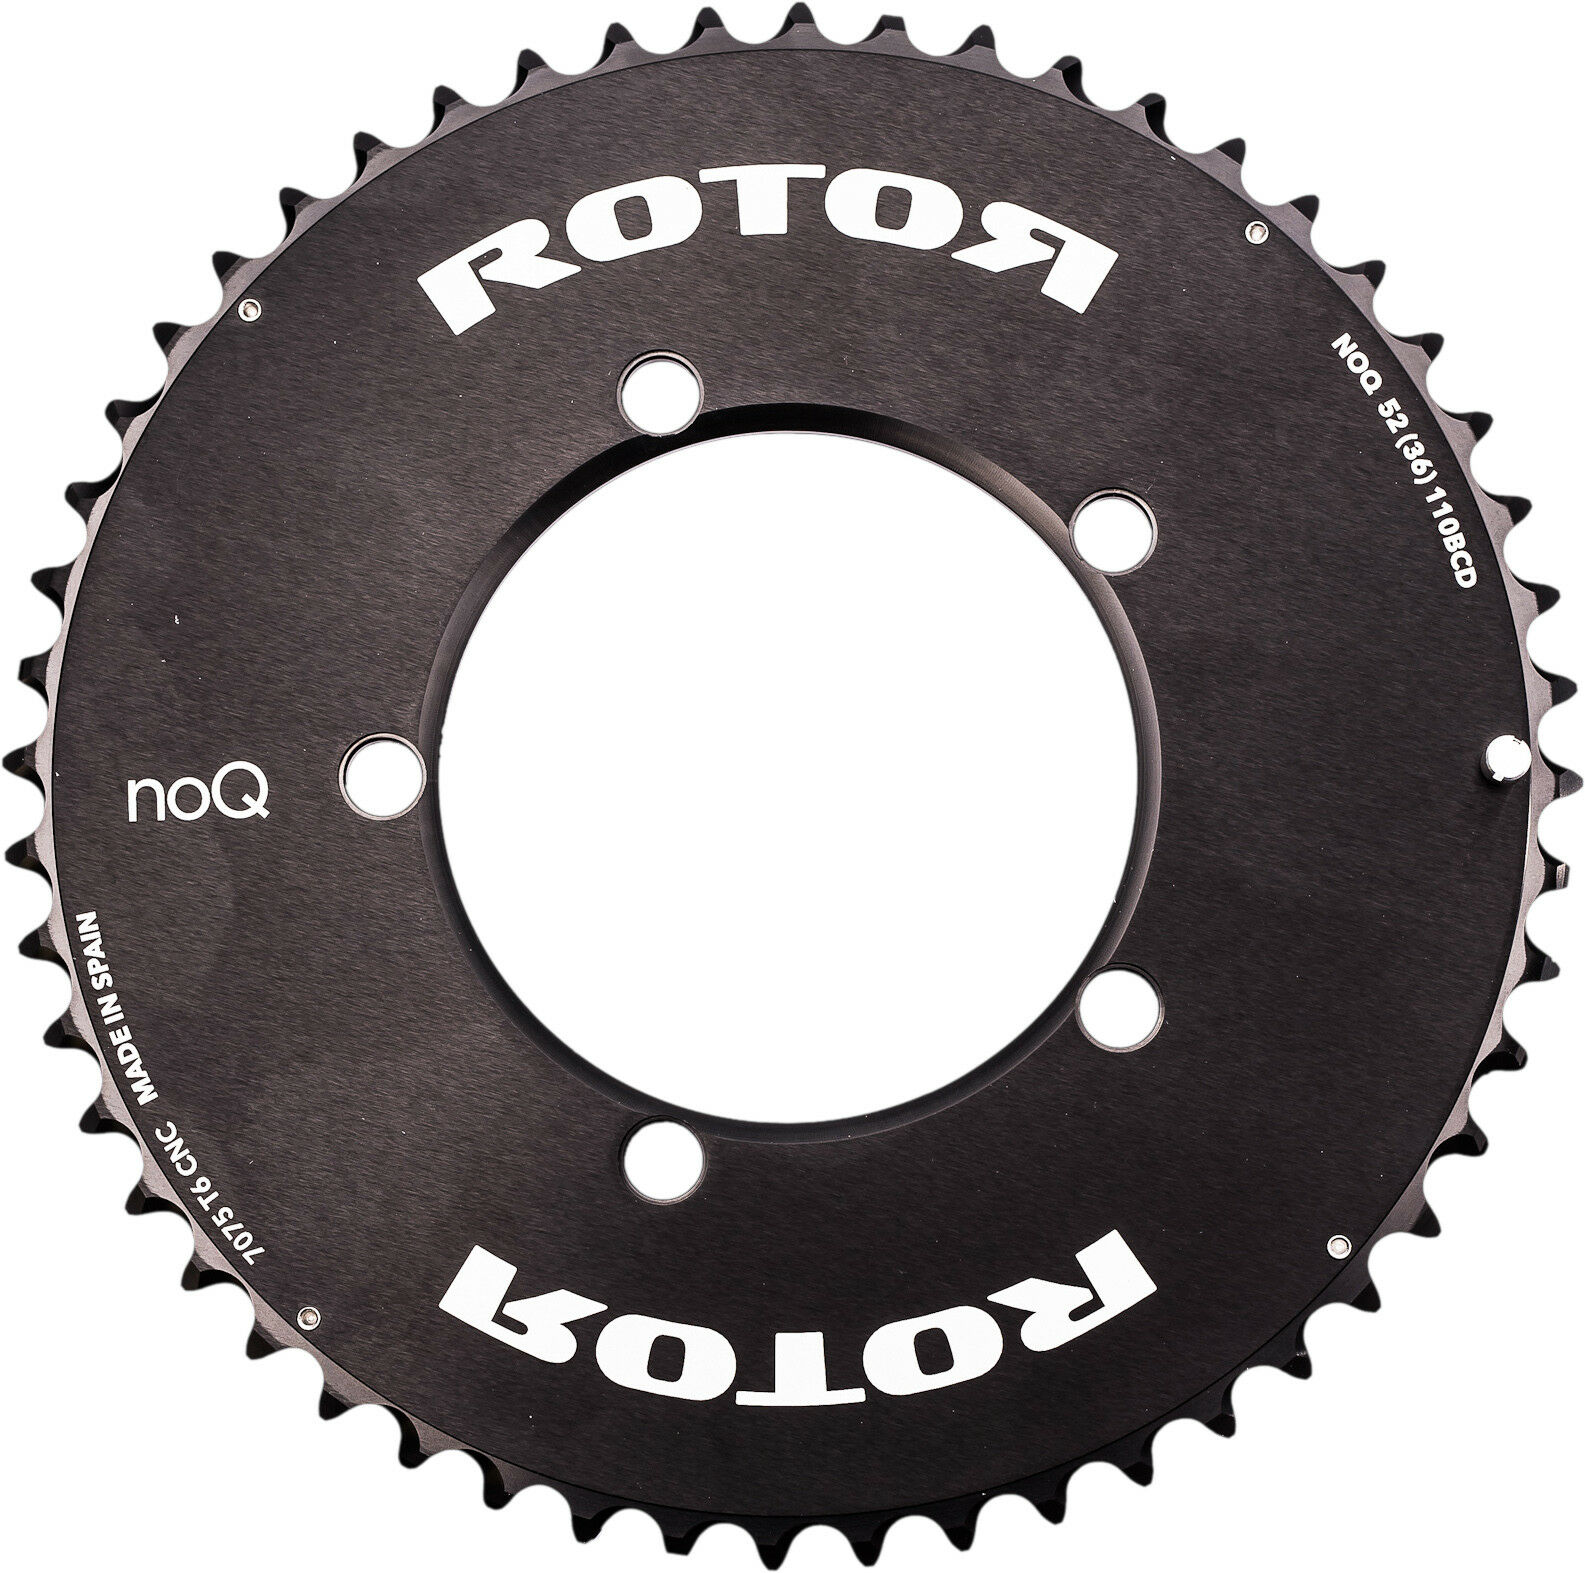 PLATO INDIVIDUAL CARRETERA redOR   redOR SINGLE ROAD CHAINRING